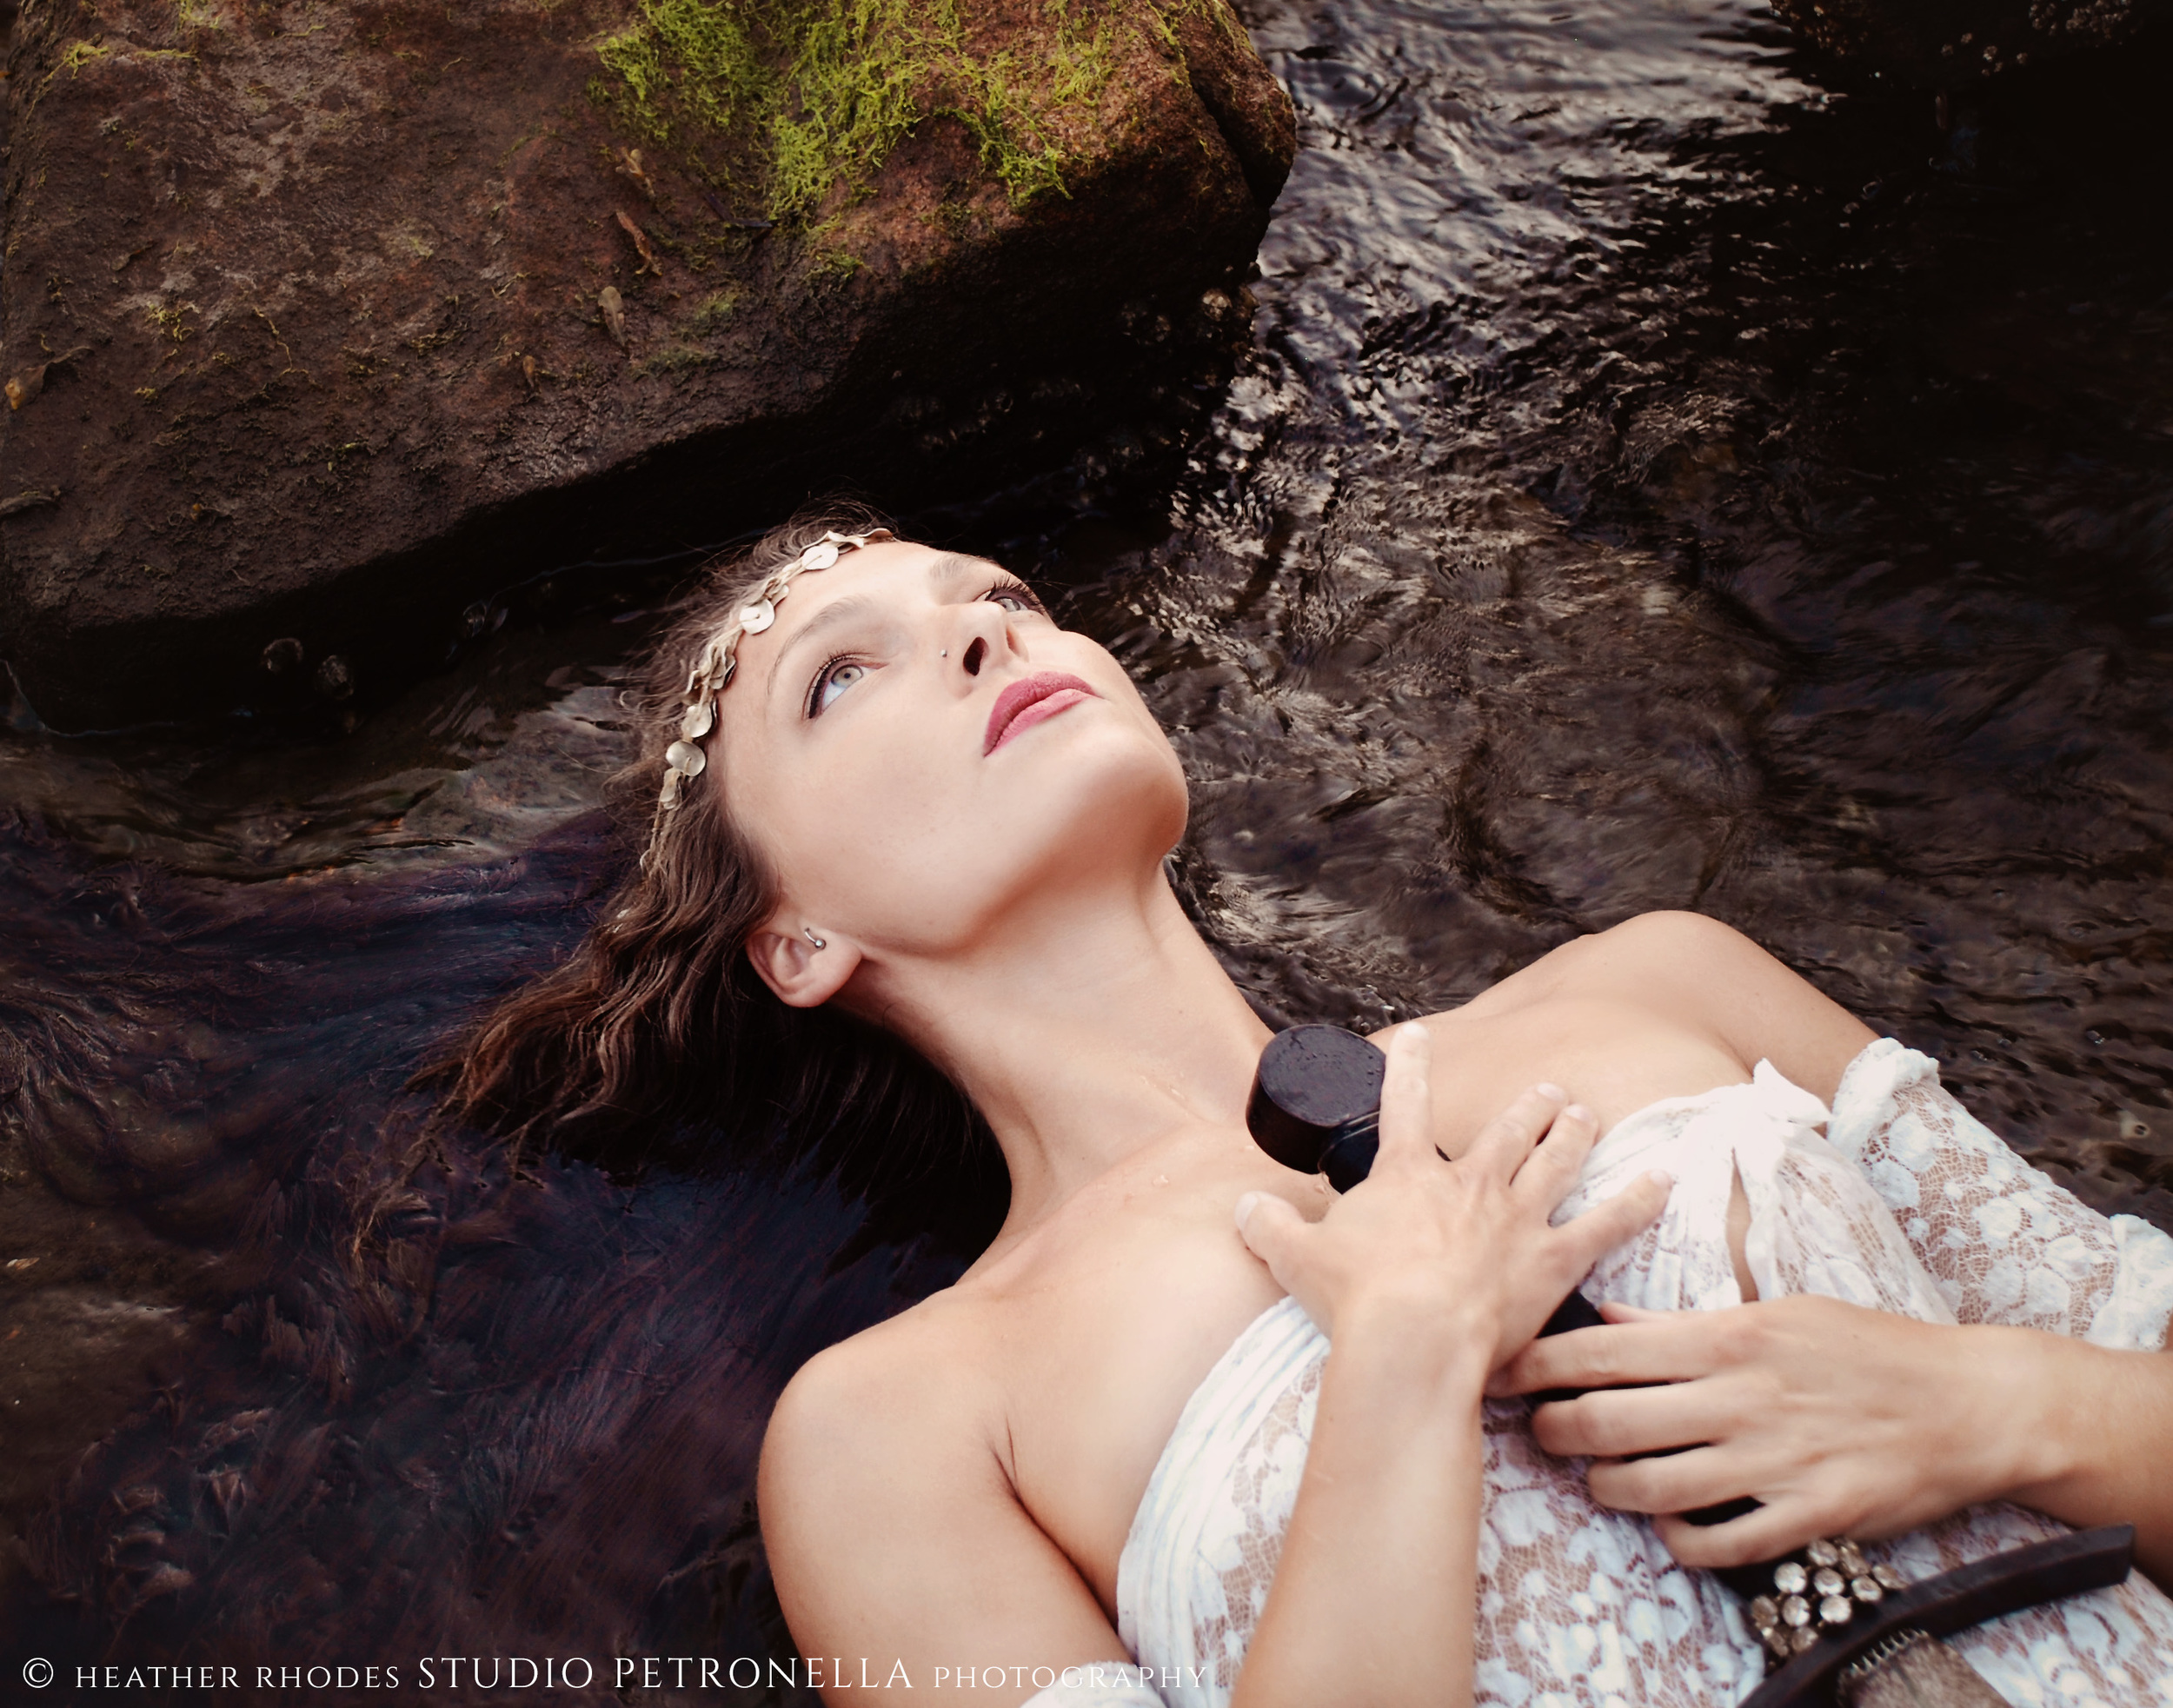 emily lady of the lake 3 © heather rhodes studio petronella all rights reserved.jpg